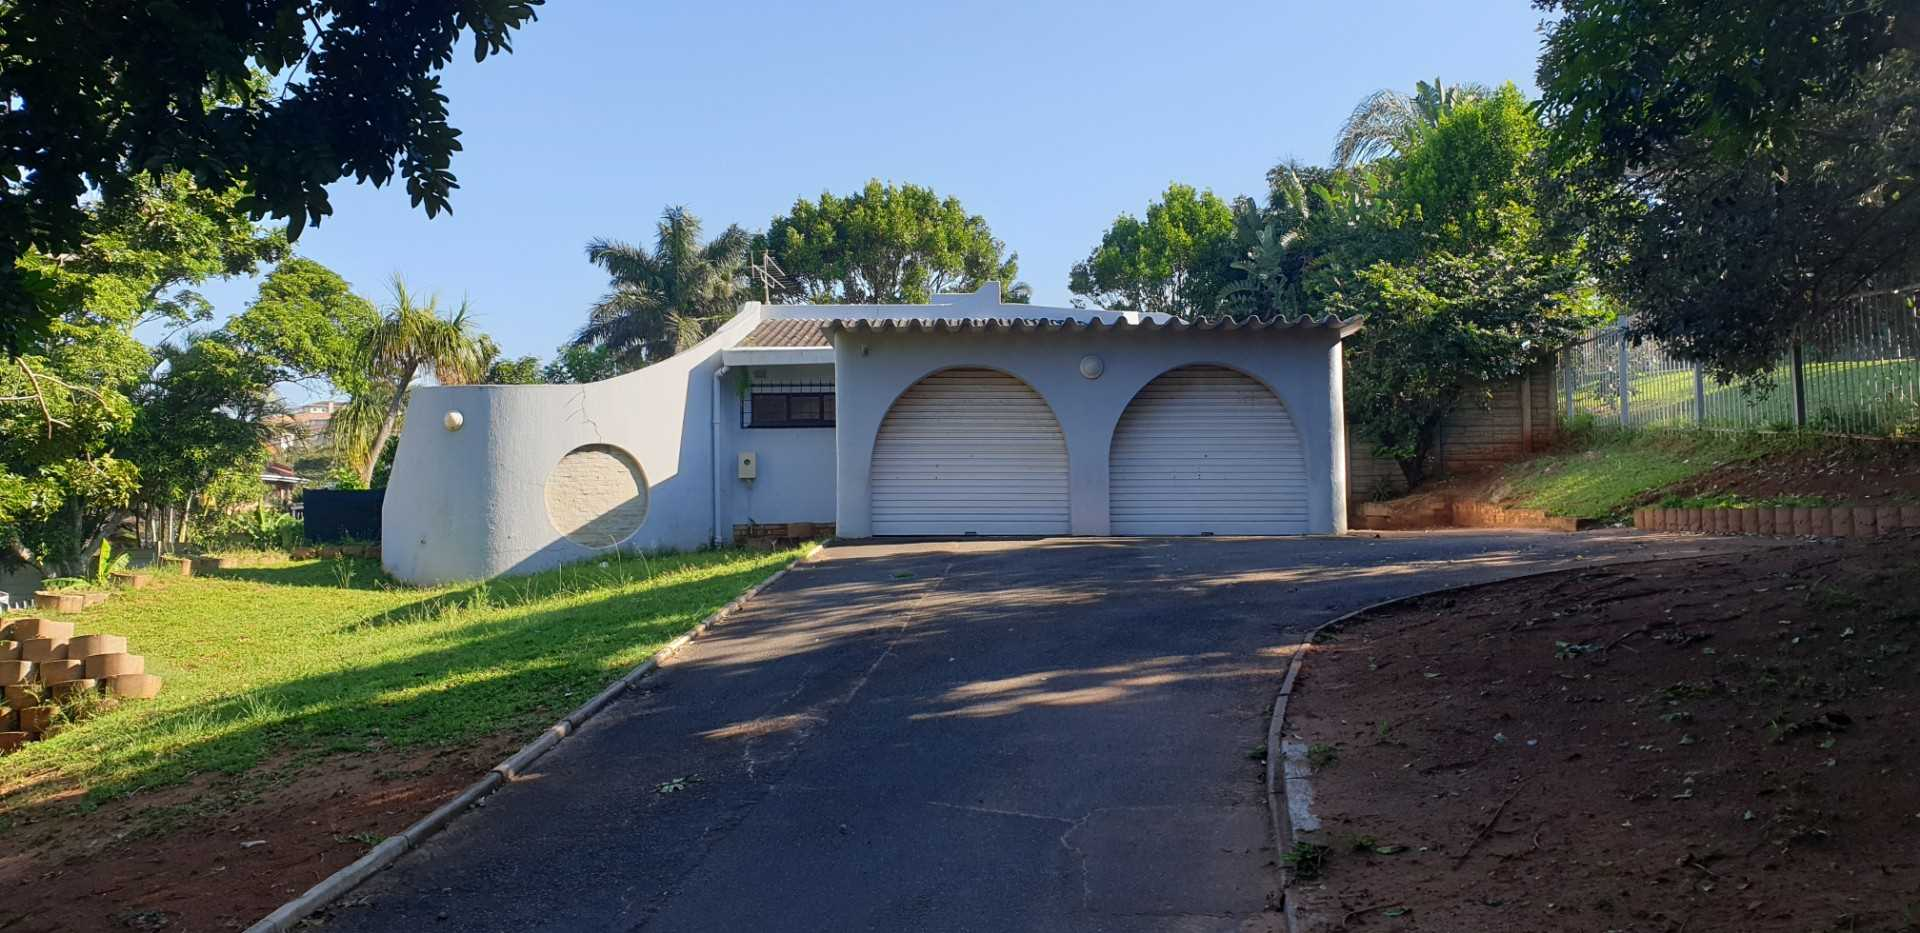 4 bedroom 2 bathroom house in Ballito for sale